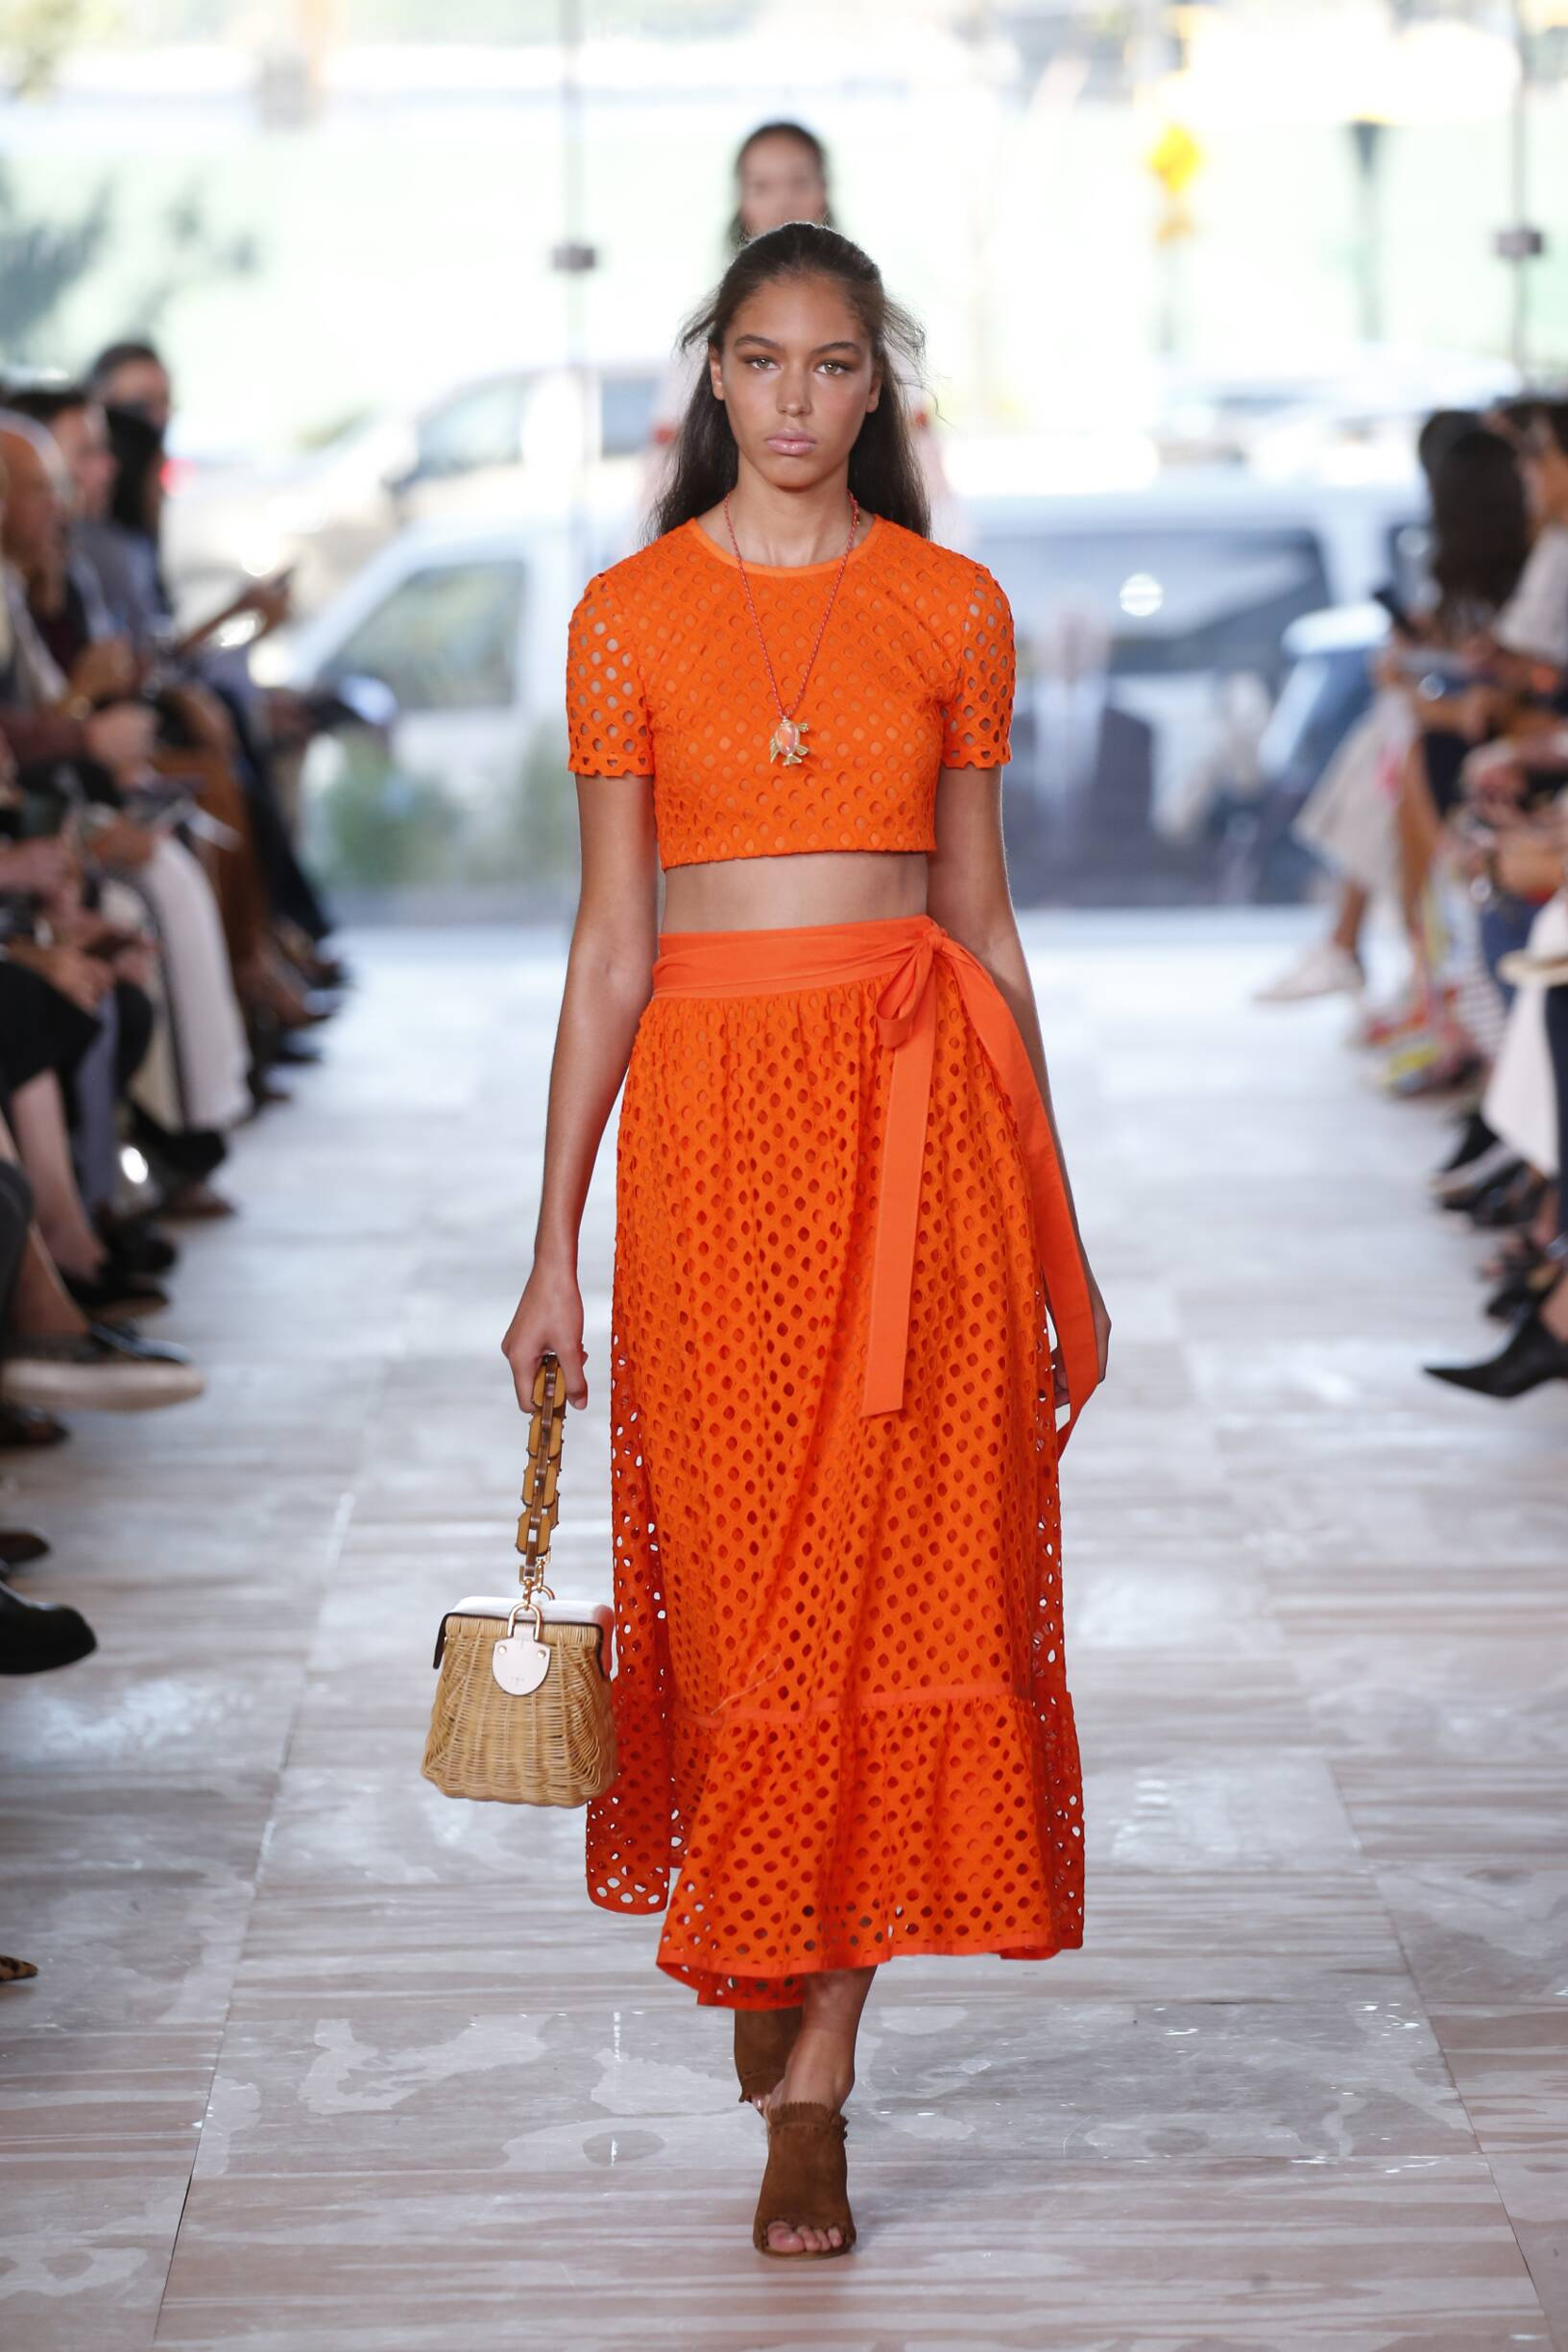 Tory Burch SS 2017 Womenswear